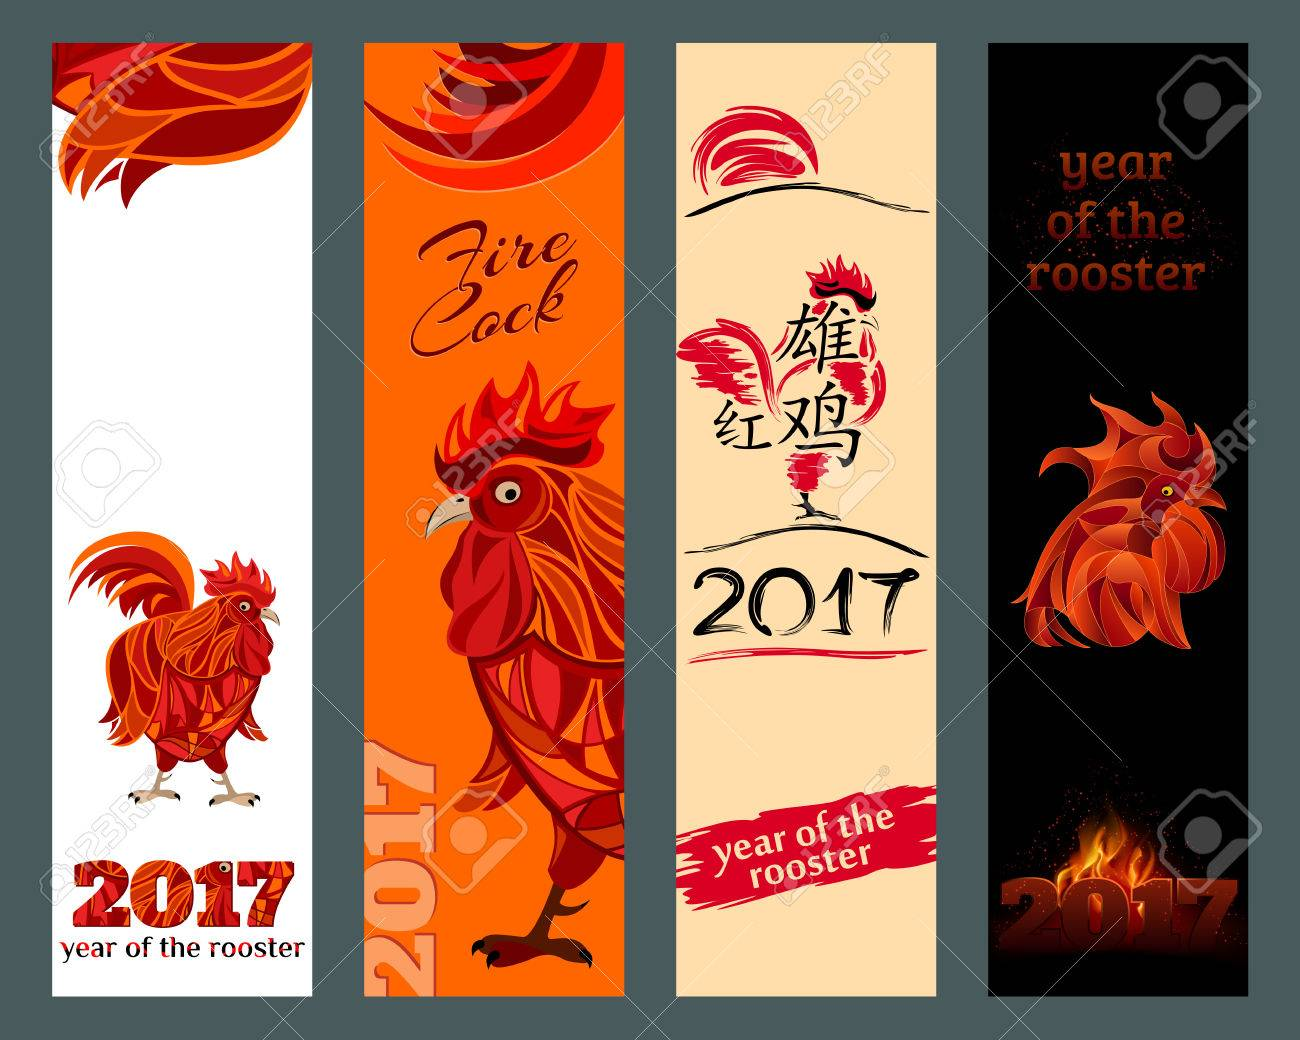 Vertical banners set with 2017 chinese new year symbol fire cock vertical banners set with 2017 chinese new year symbol fire cock translation integrated hieroglyphs buycottarizona Gallery